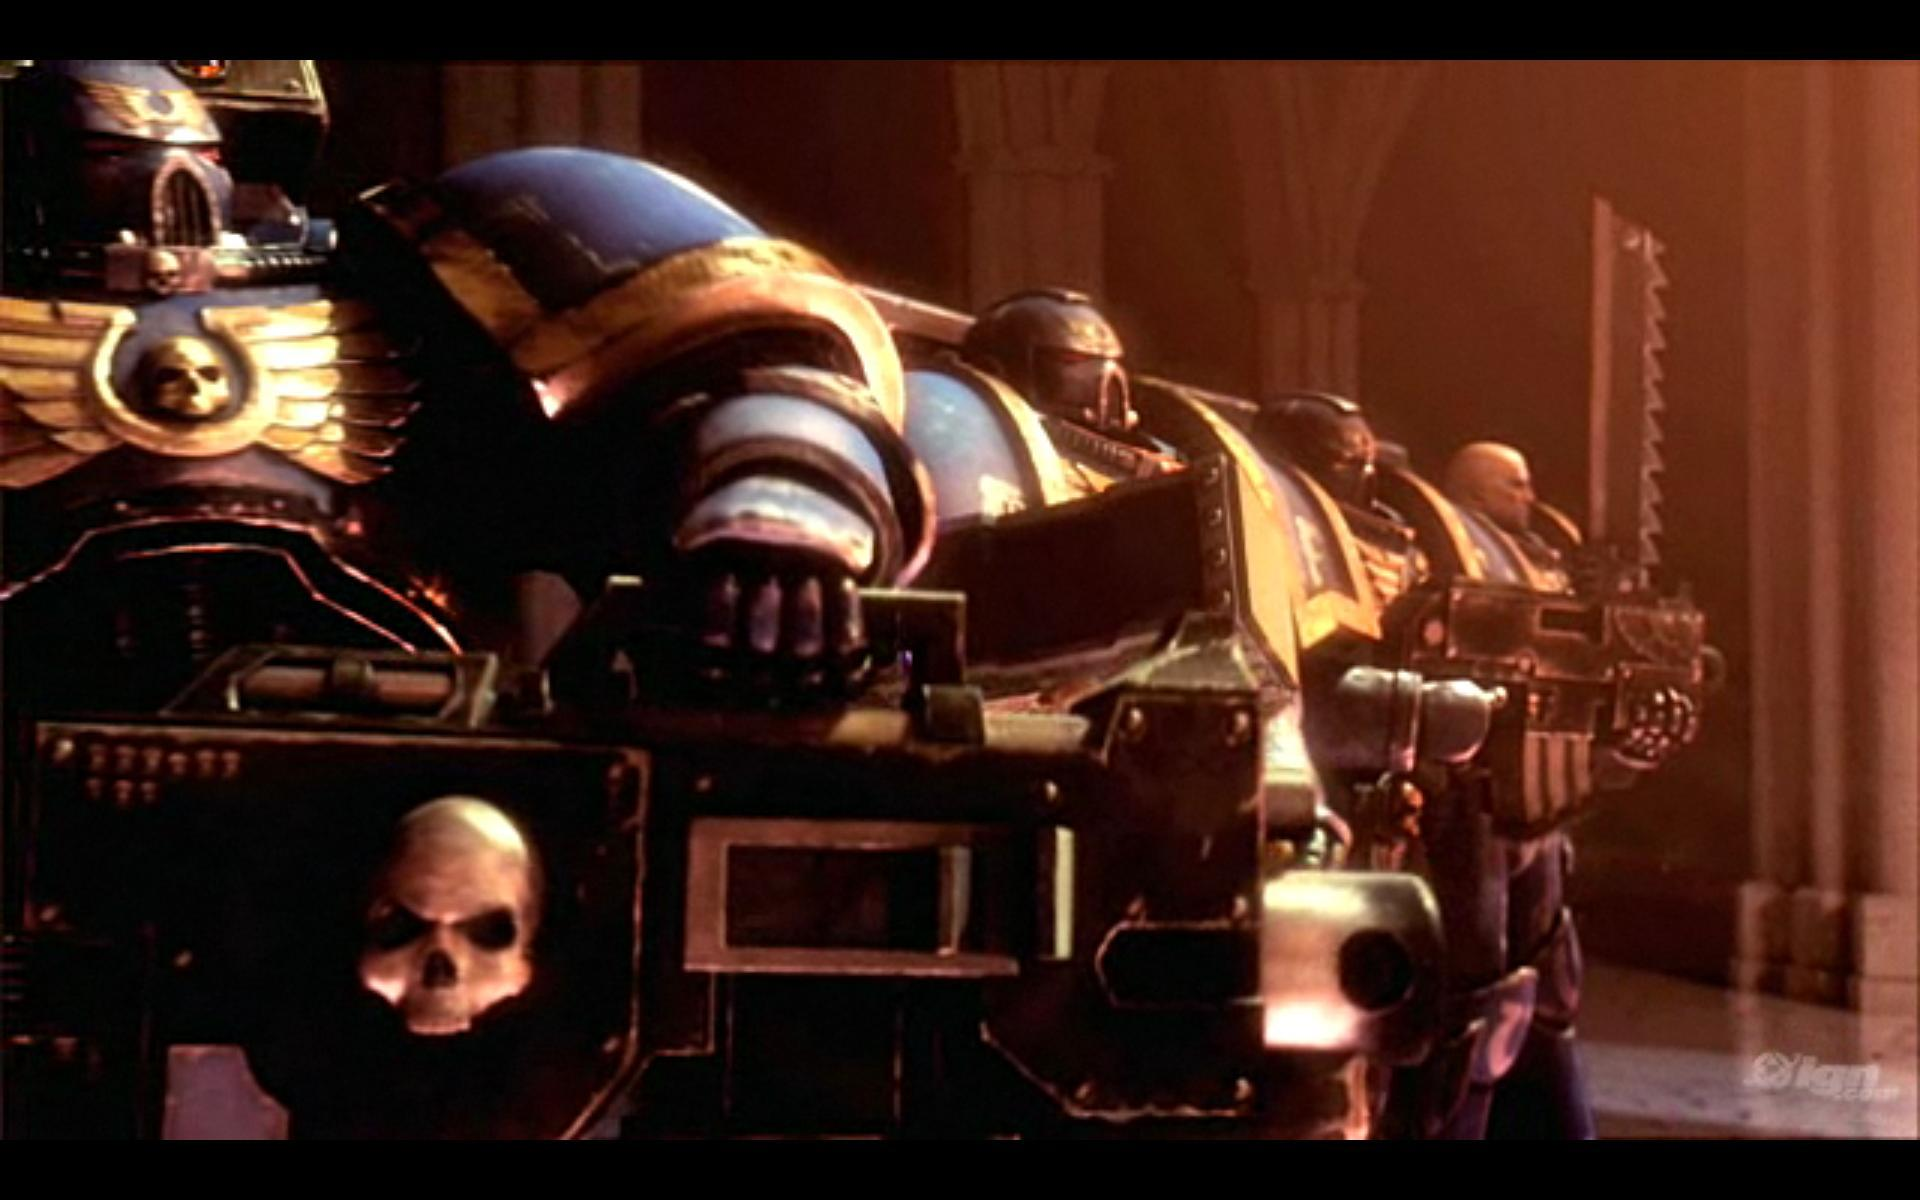 Warhammer 40k space marines wallpaper 1920x1200 11287 1920x1200